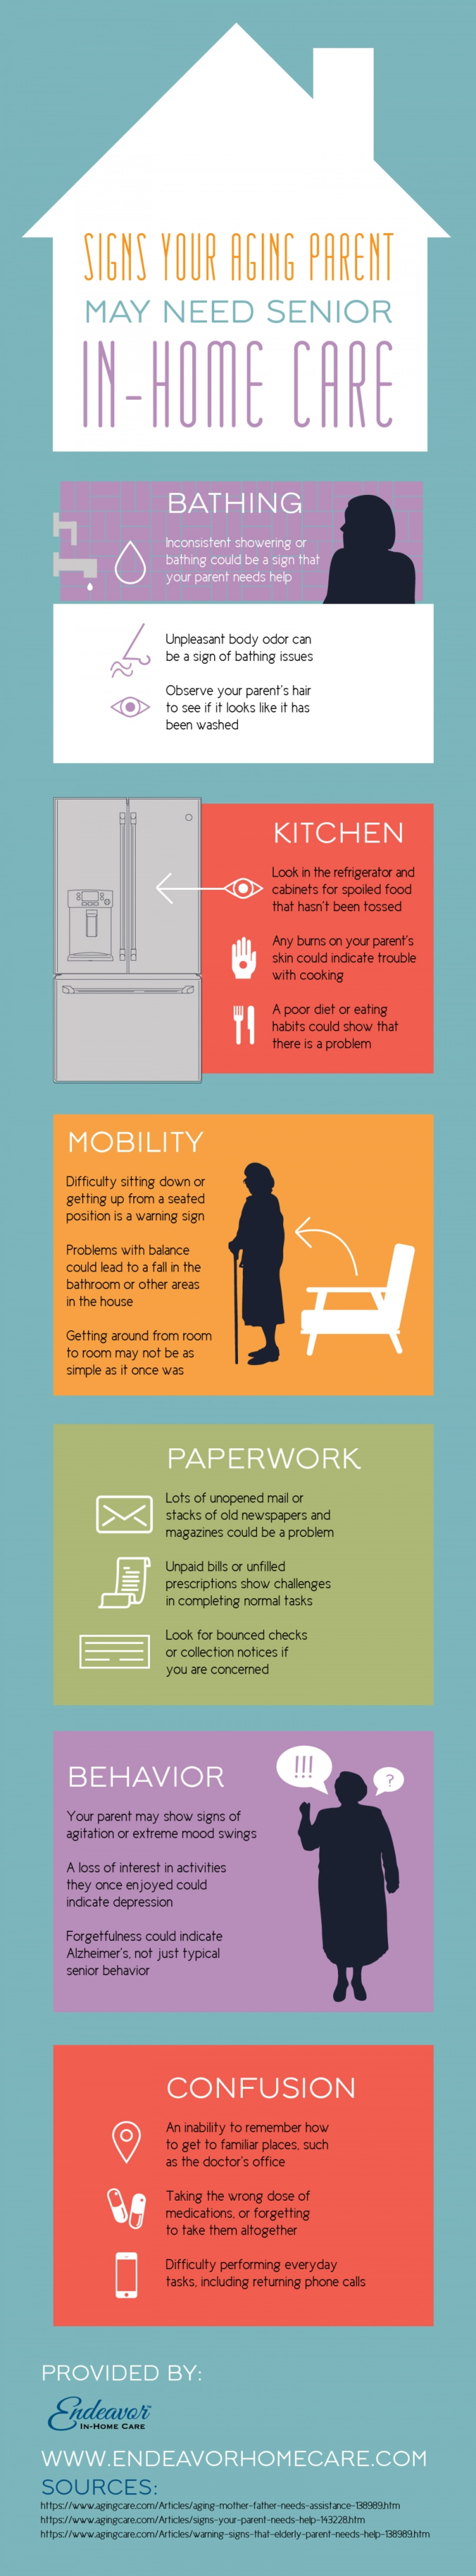 Signs Your Aging Parent May Need Senior In-Home Care Infographic